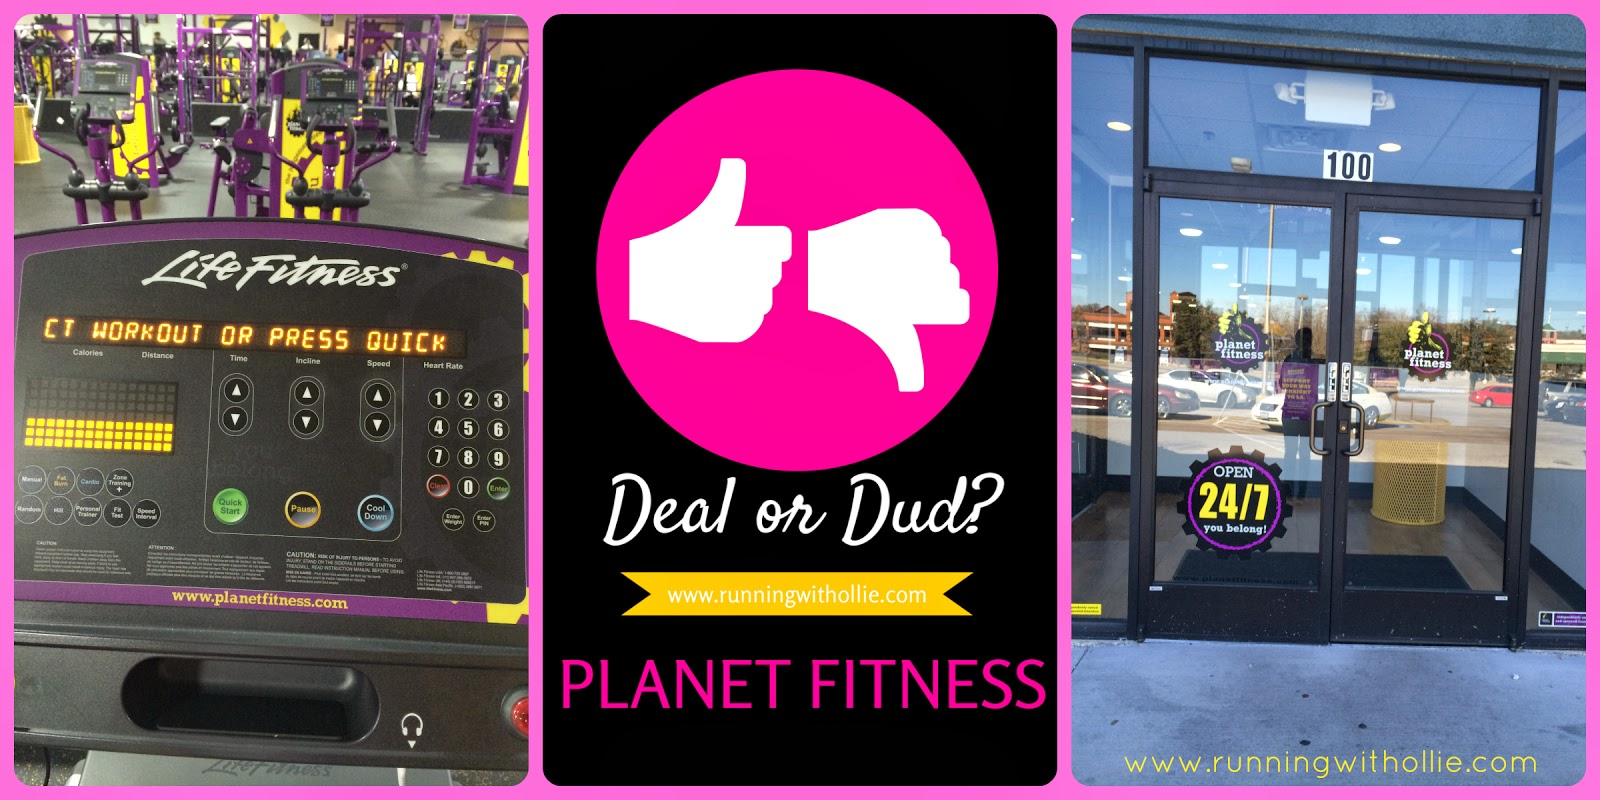 Planet fitness anderson indiana